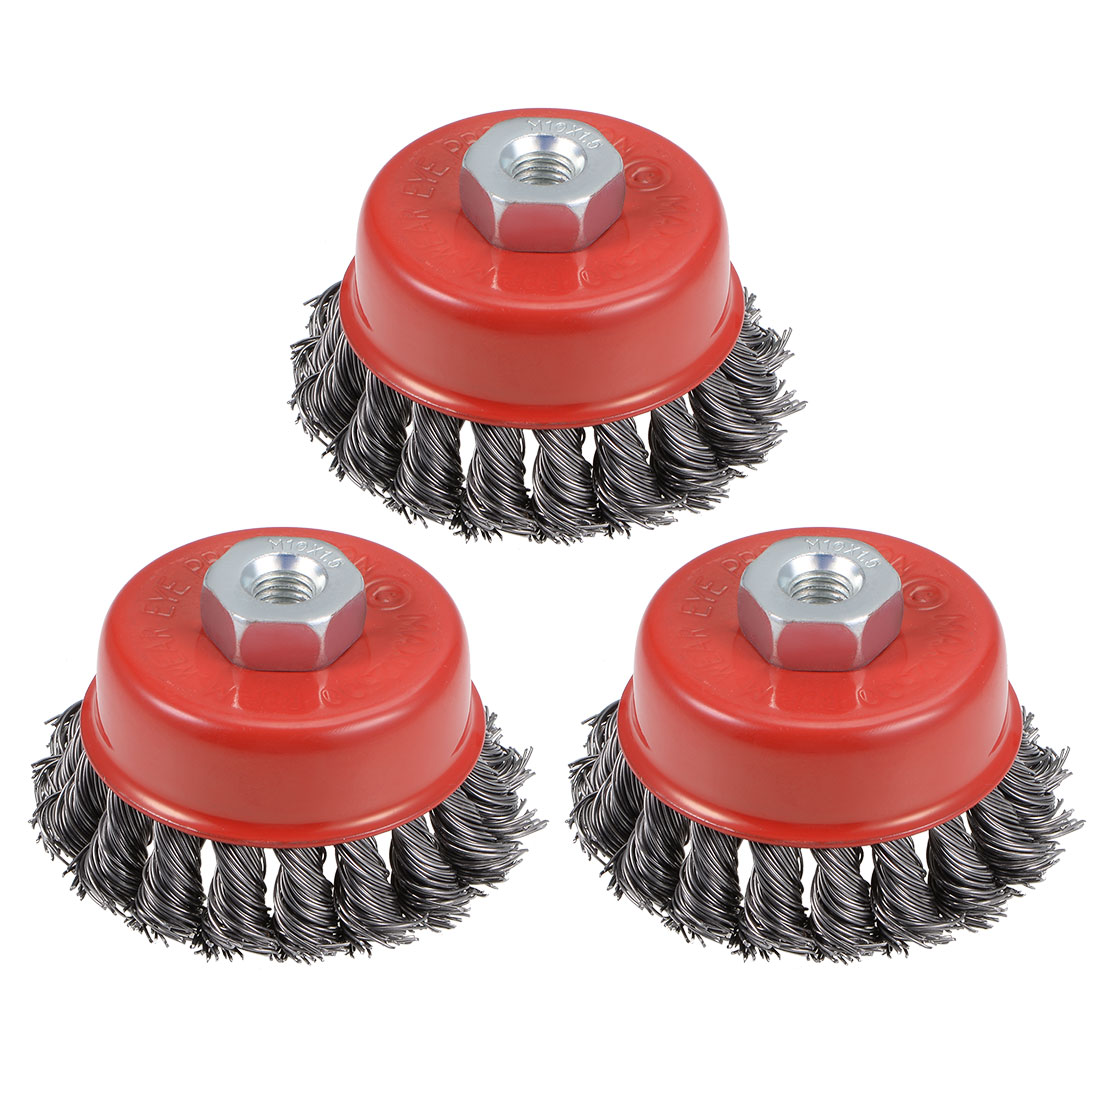 3-Inch Wire Cup Brush Twist Knotted Crimped Steel with M10 Threaded Hole 3 Pcs